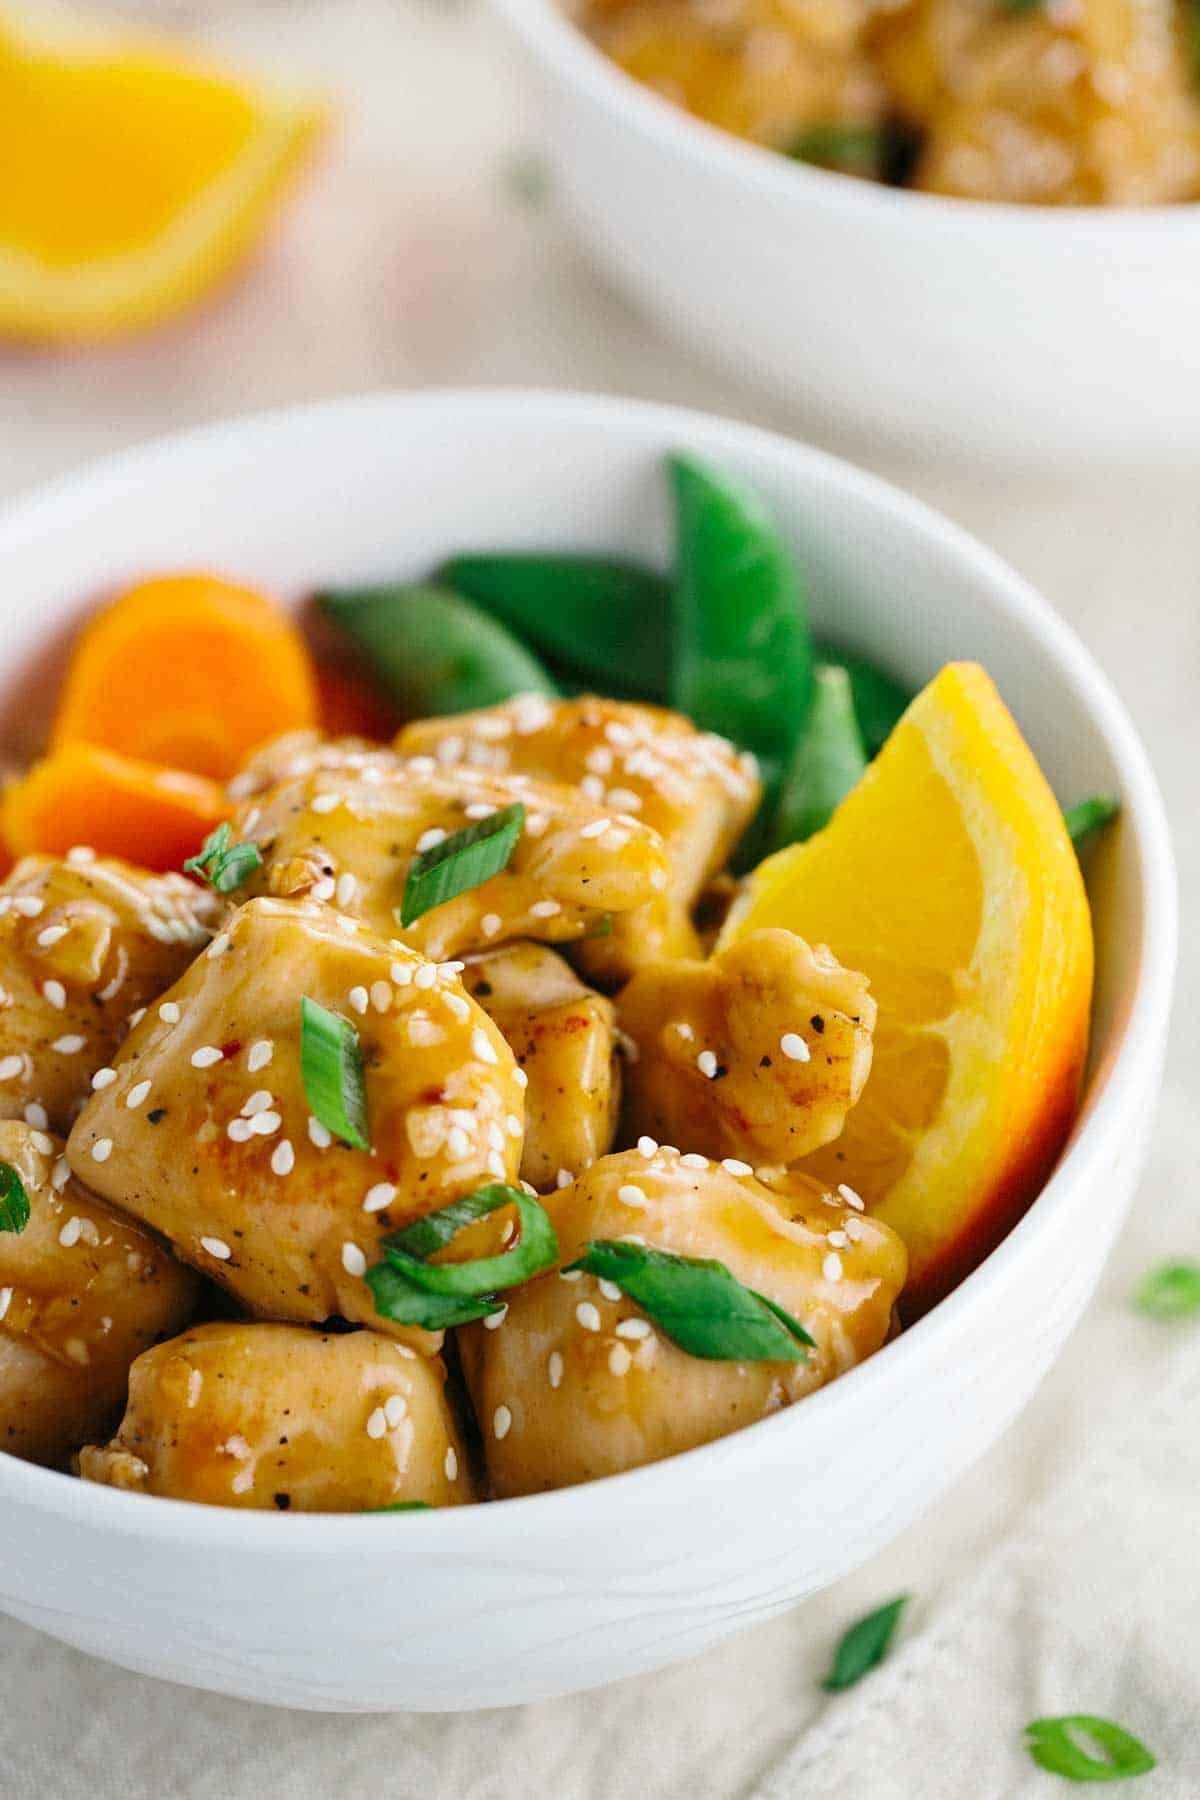 Chinese Orange Chicken #chineseorangechicken This easy Chinese orange chicken recipe is a healthier homemade option. Lean chicken breast stir-fried and simmered in a sweet and tangy orange sauce. #orangechicken #pandaexpress #chinesefood #takeout #chineseorangechicken Chinese Orange Chicken #chineseorangechicken This easy Chinese orange chicken recipe is a healthier homemade option. Lean chicken breast stir-fried and simmered in a sweet and tangy orange sauce. #orangechicken #pandaexpress #chine #chineseorangechicken